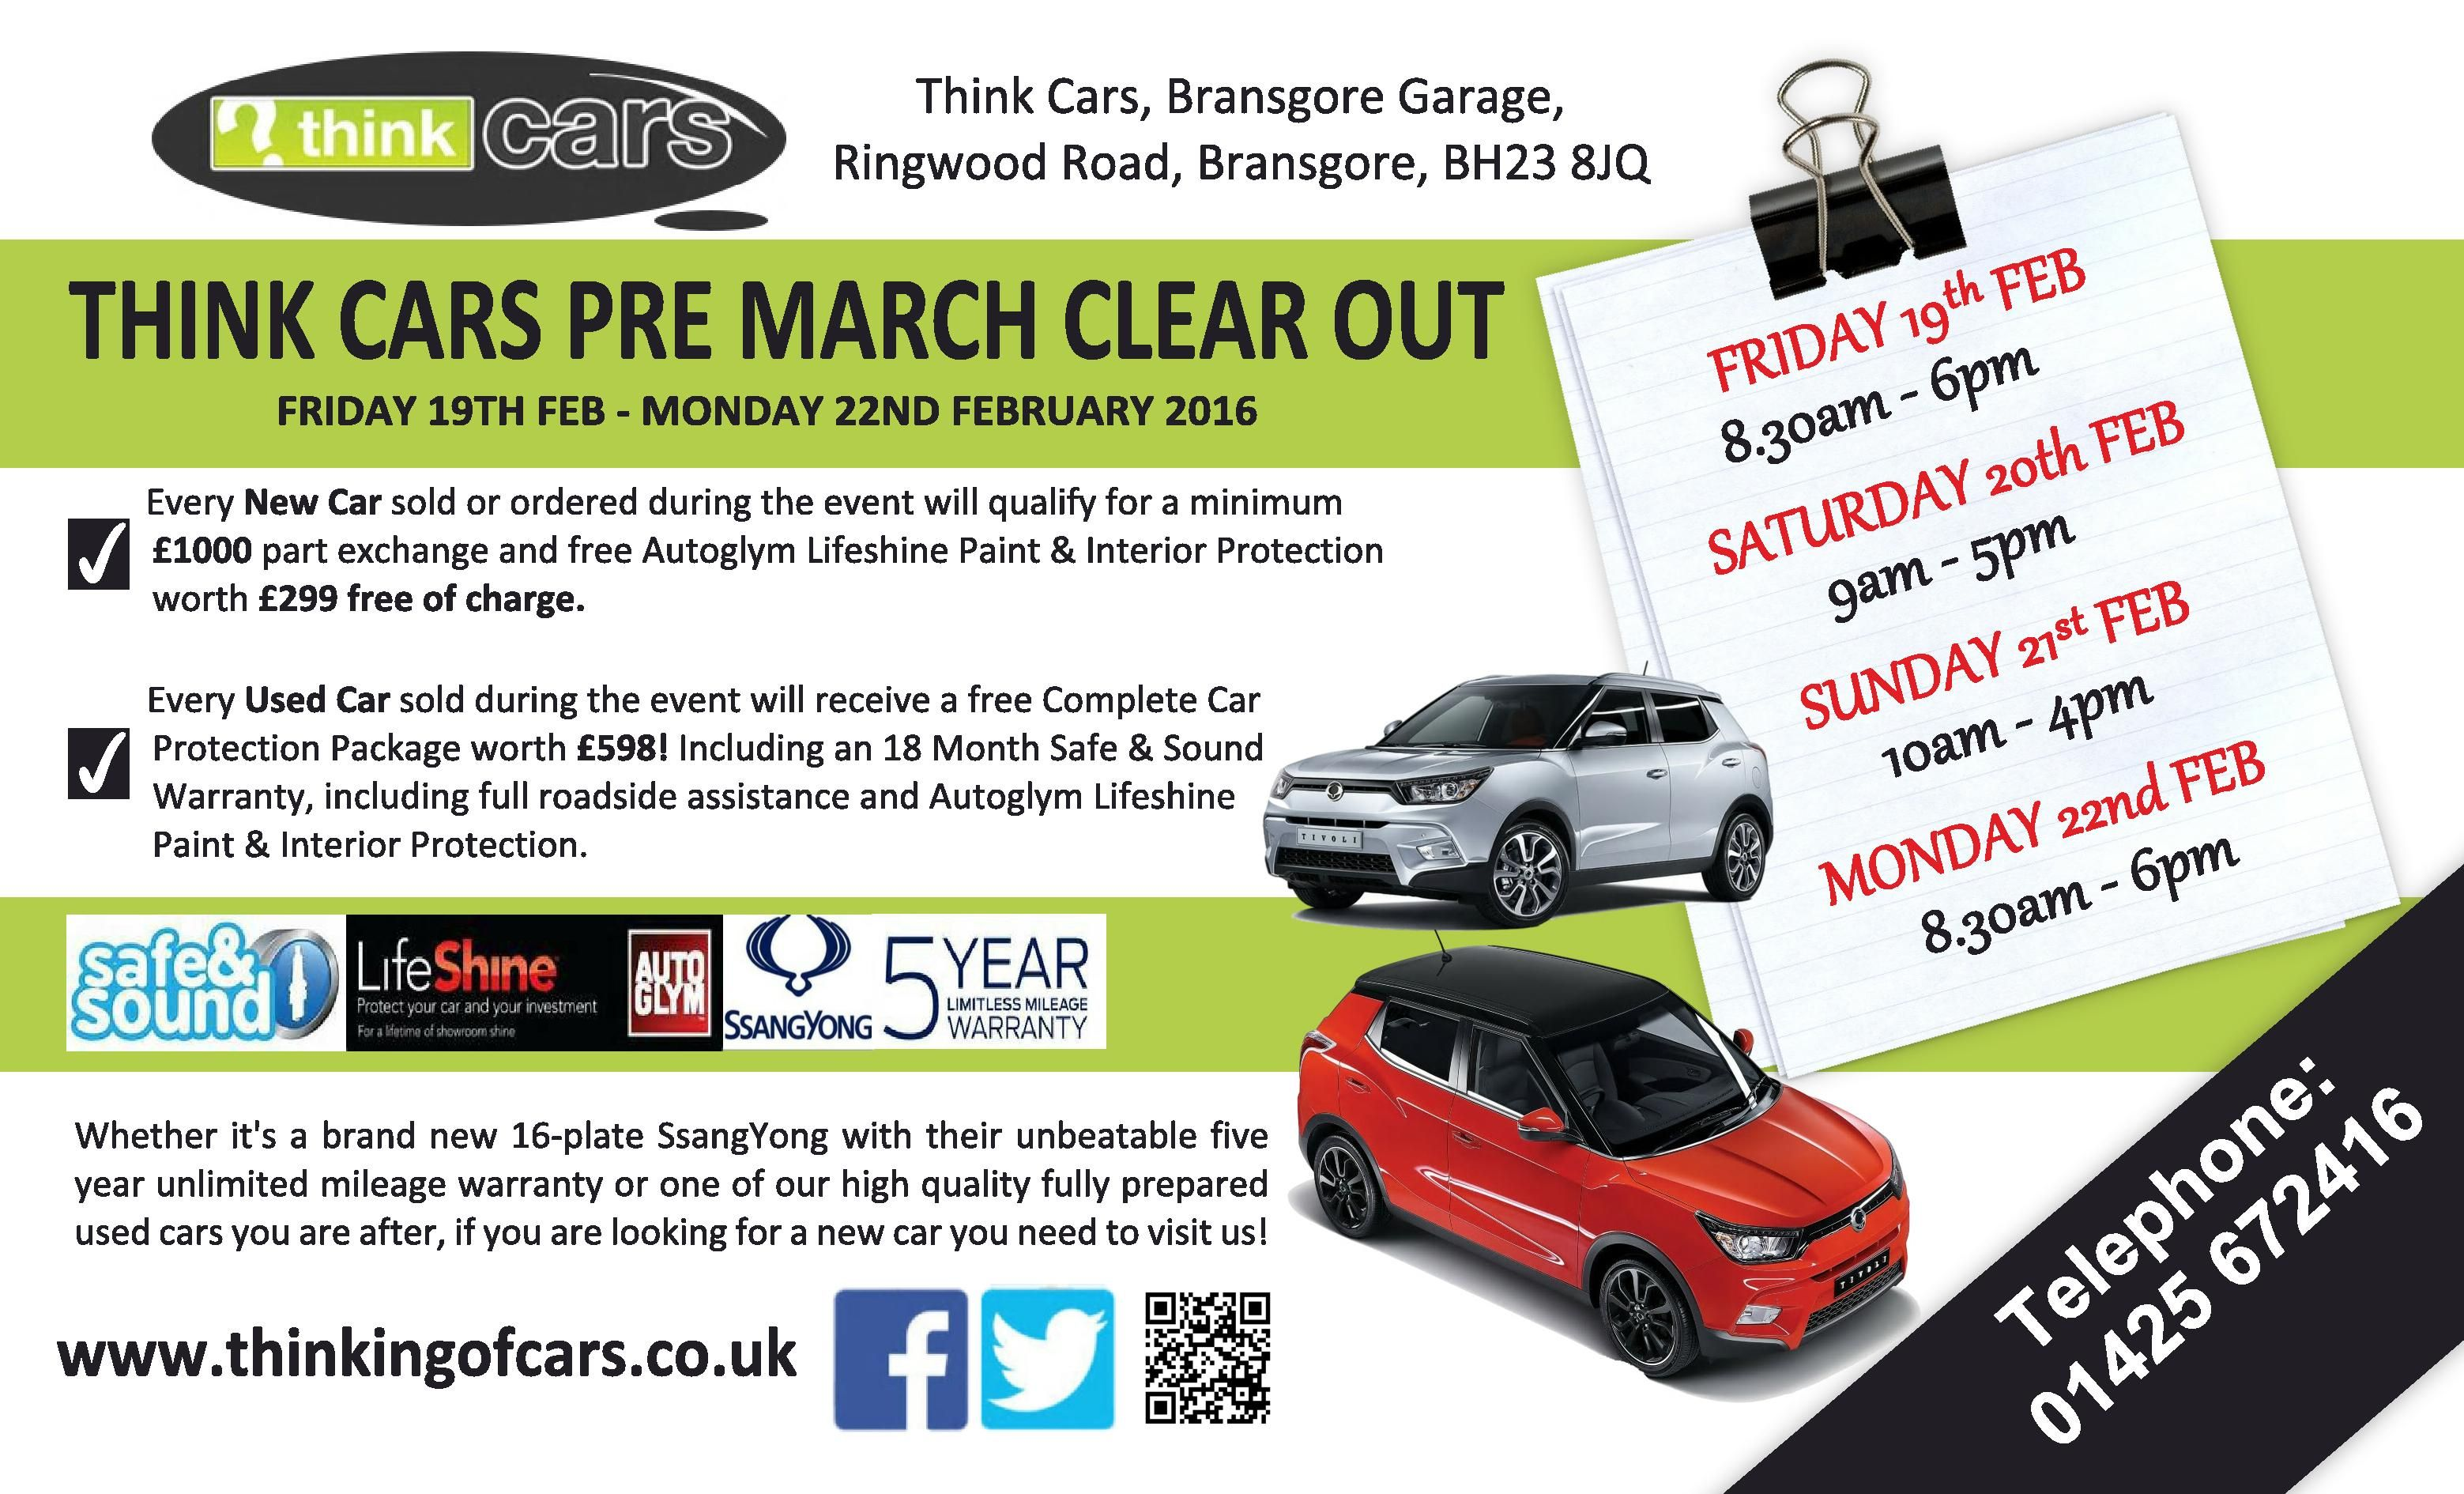 Think Cars Pre-March Clearout Event